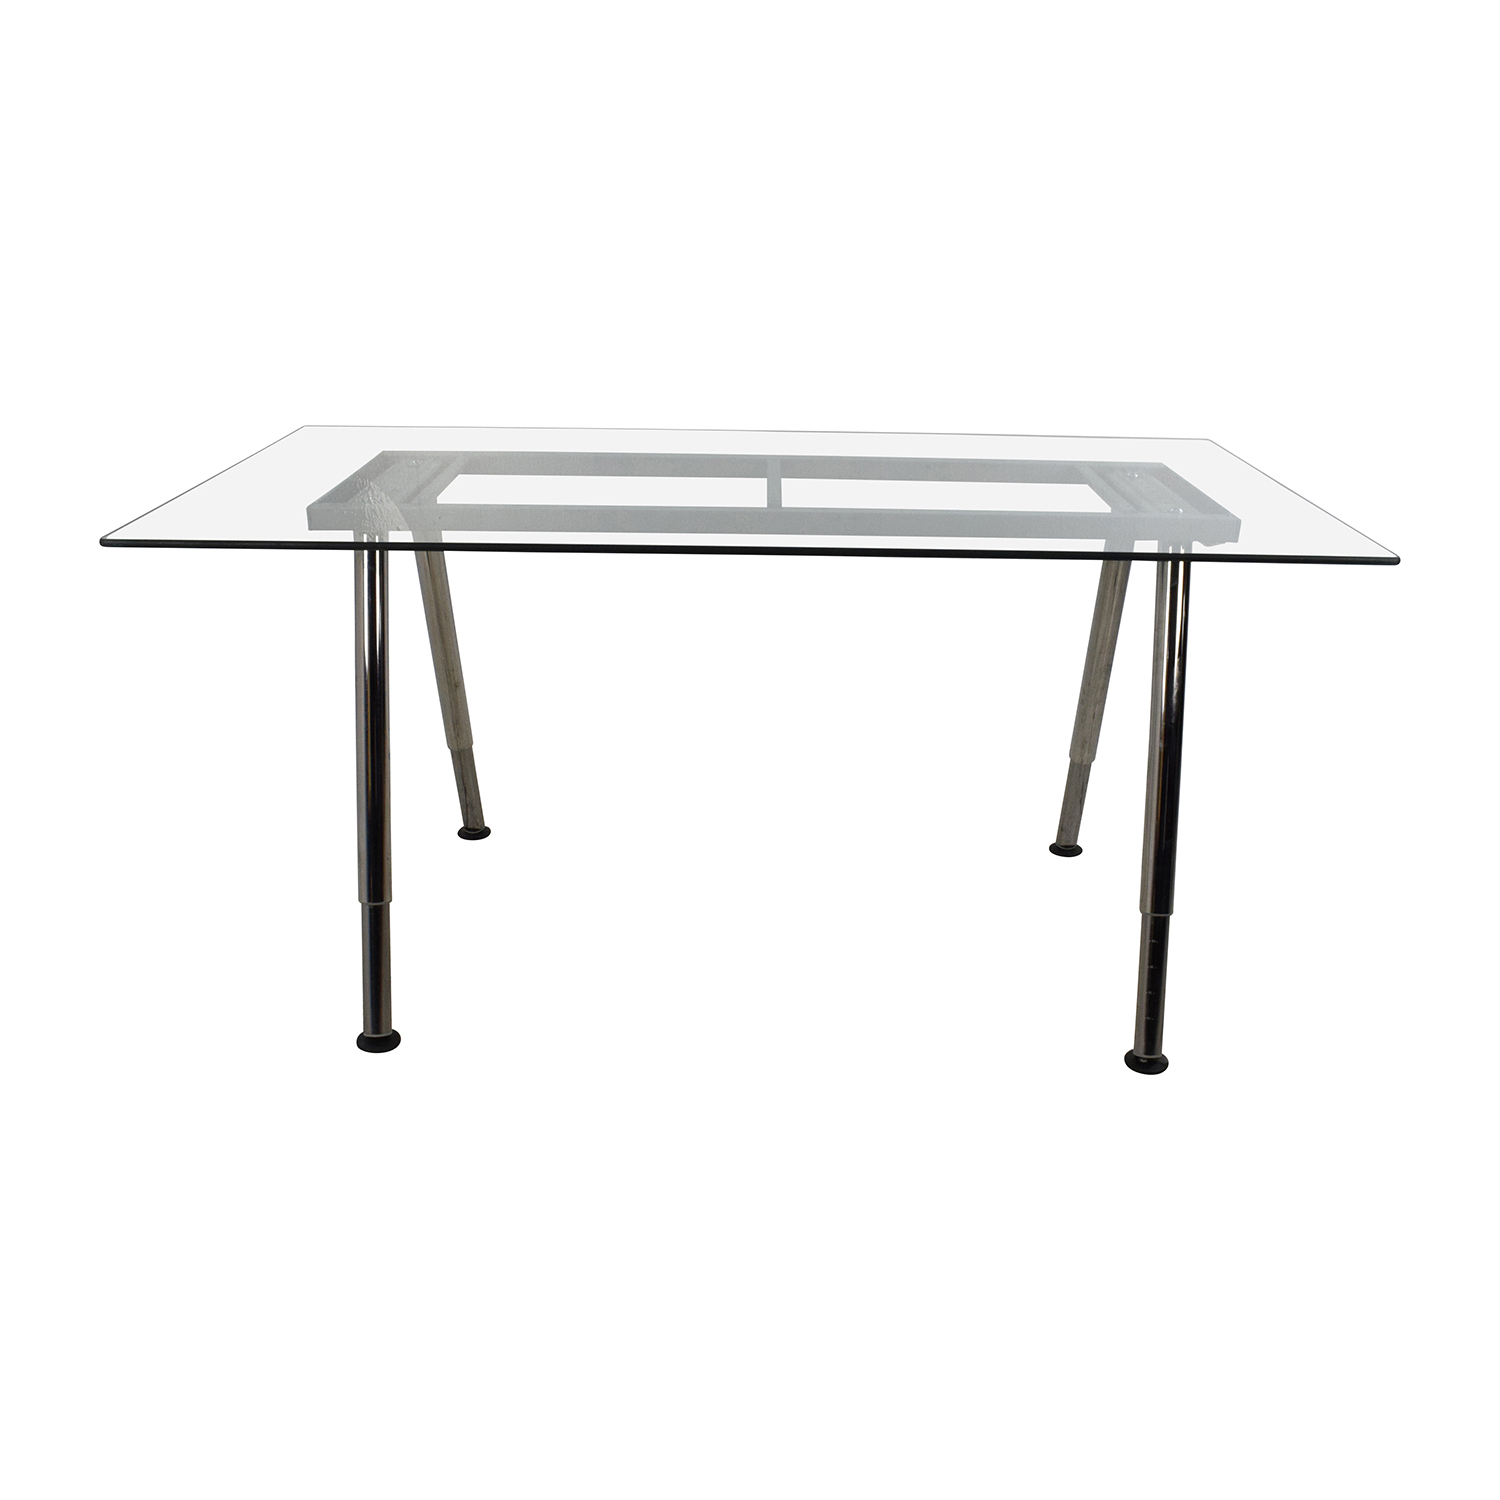 With Glass Top Metal Base. Table Bases 55 Glass Top Dining Tables Inside Parsons Grey Solid Surface Top & Stainless Steel Base 48X16 Console Tables (Gallery 19 of 20)